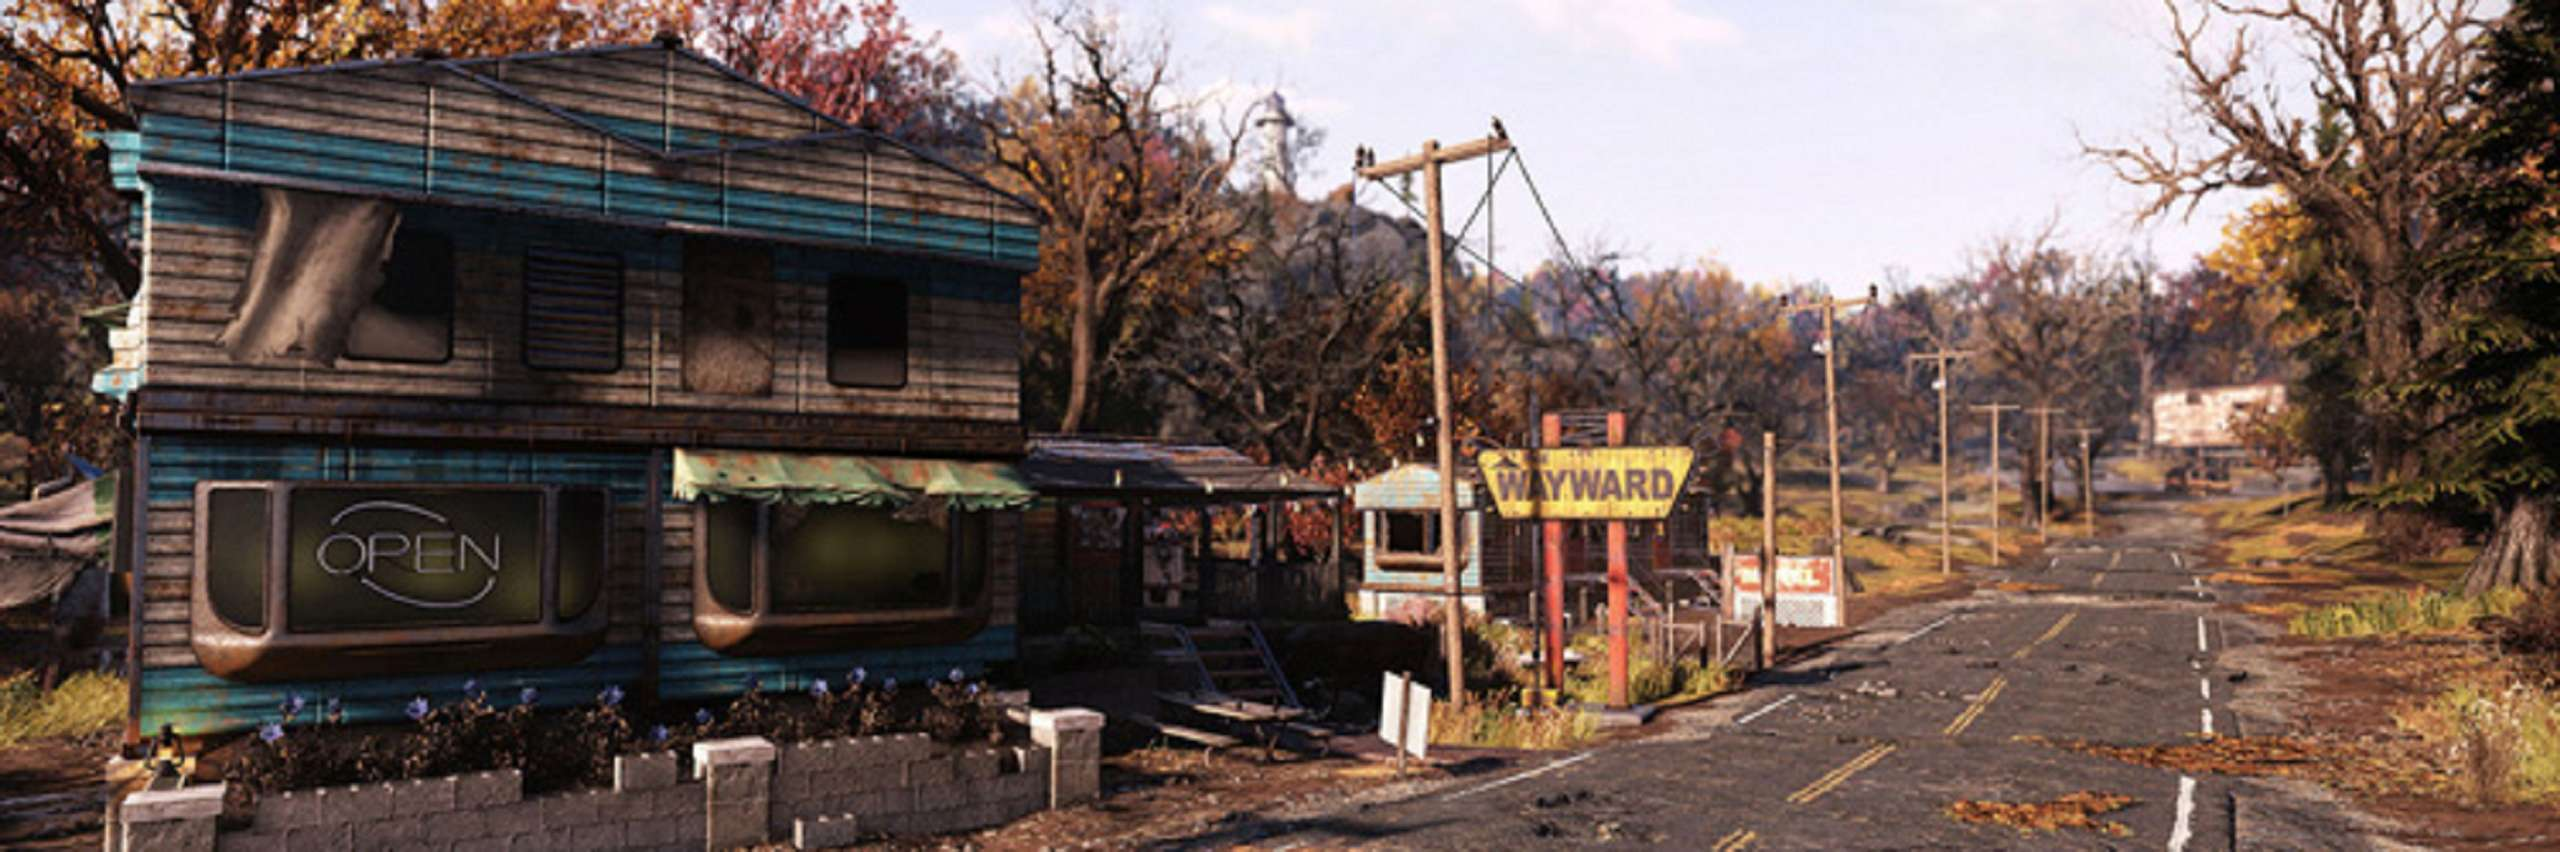 Fallout 76's Season Pass System Will Be Free To All Users, According To Bethesda